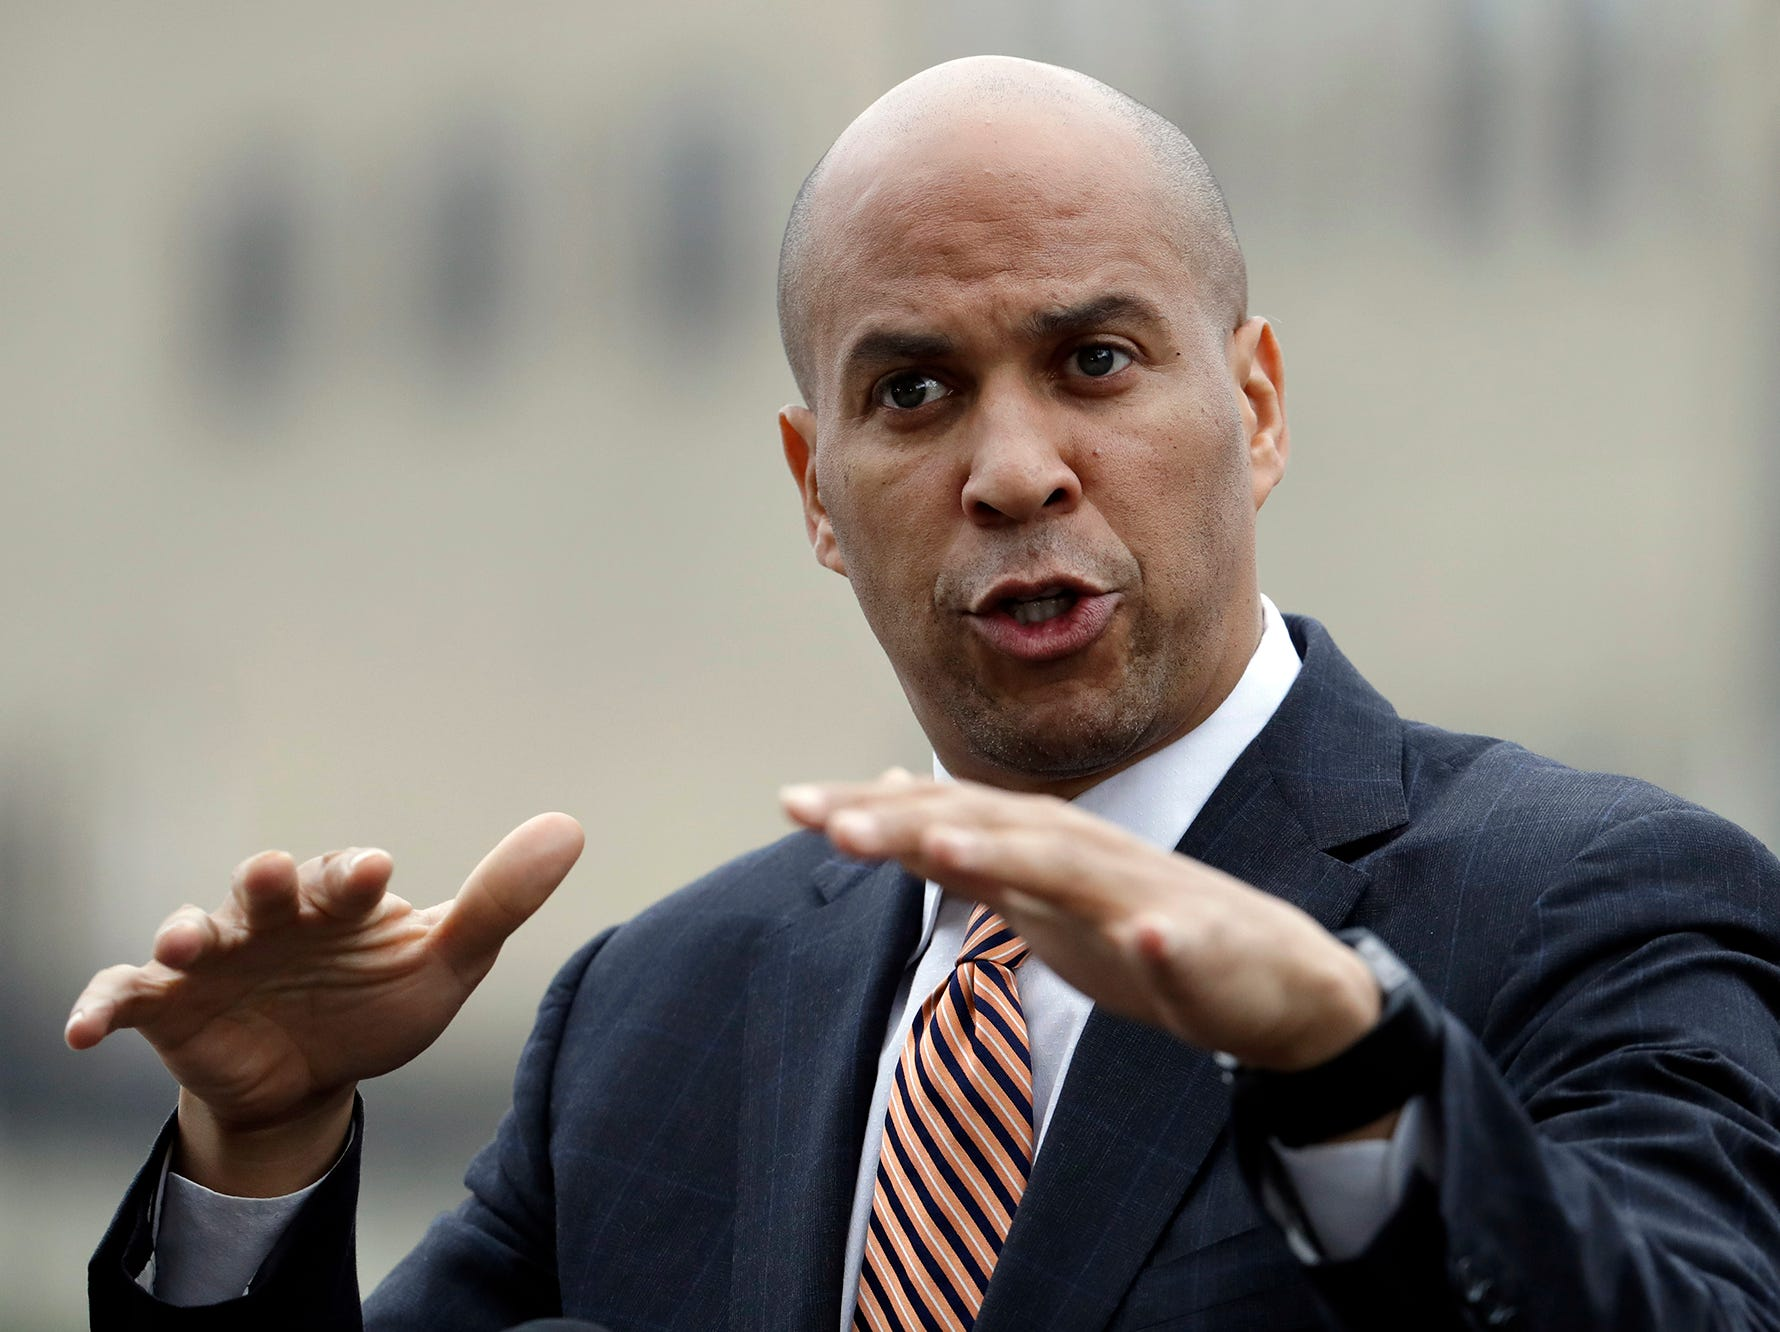 U.S. Sen. Cory Booker speaks during a news conference near the Hoboken station following a train crash, Thursday, Sept. 29, 2016, in Hoboken, N.J. A rush-hour commuter train crashed through a barrier at the busy Hoboken station and lurched across the waiting area Thursday morning, killing one person and injuring more than 100 others in a grisly wreck that revived questions about whether long-delayed automated safety technology could have prevented tragedy.  (AP Photo/Julio Cortez)